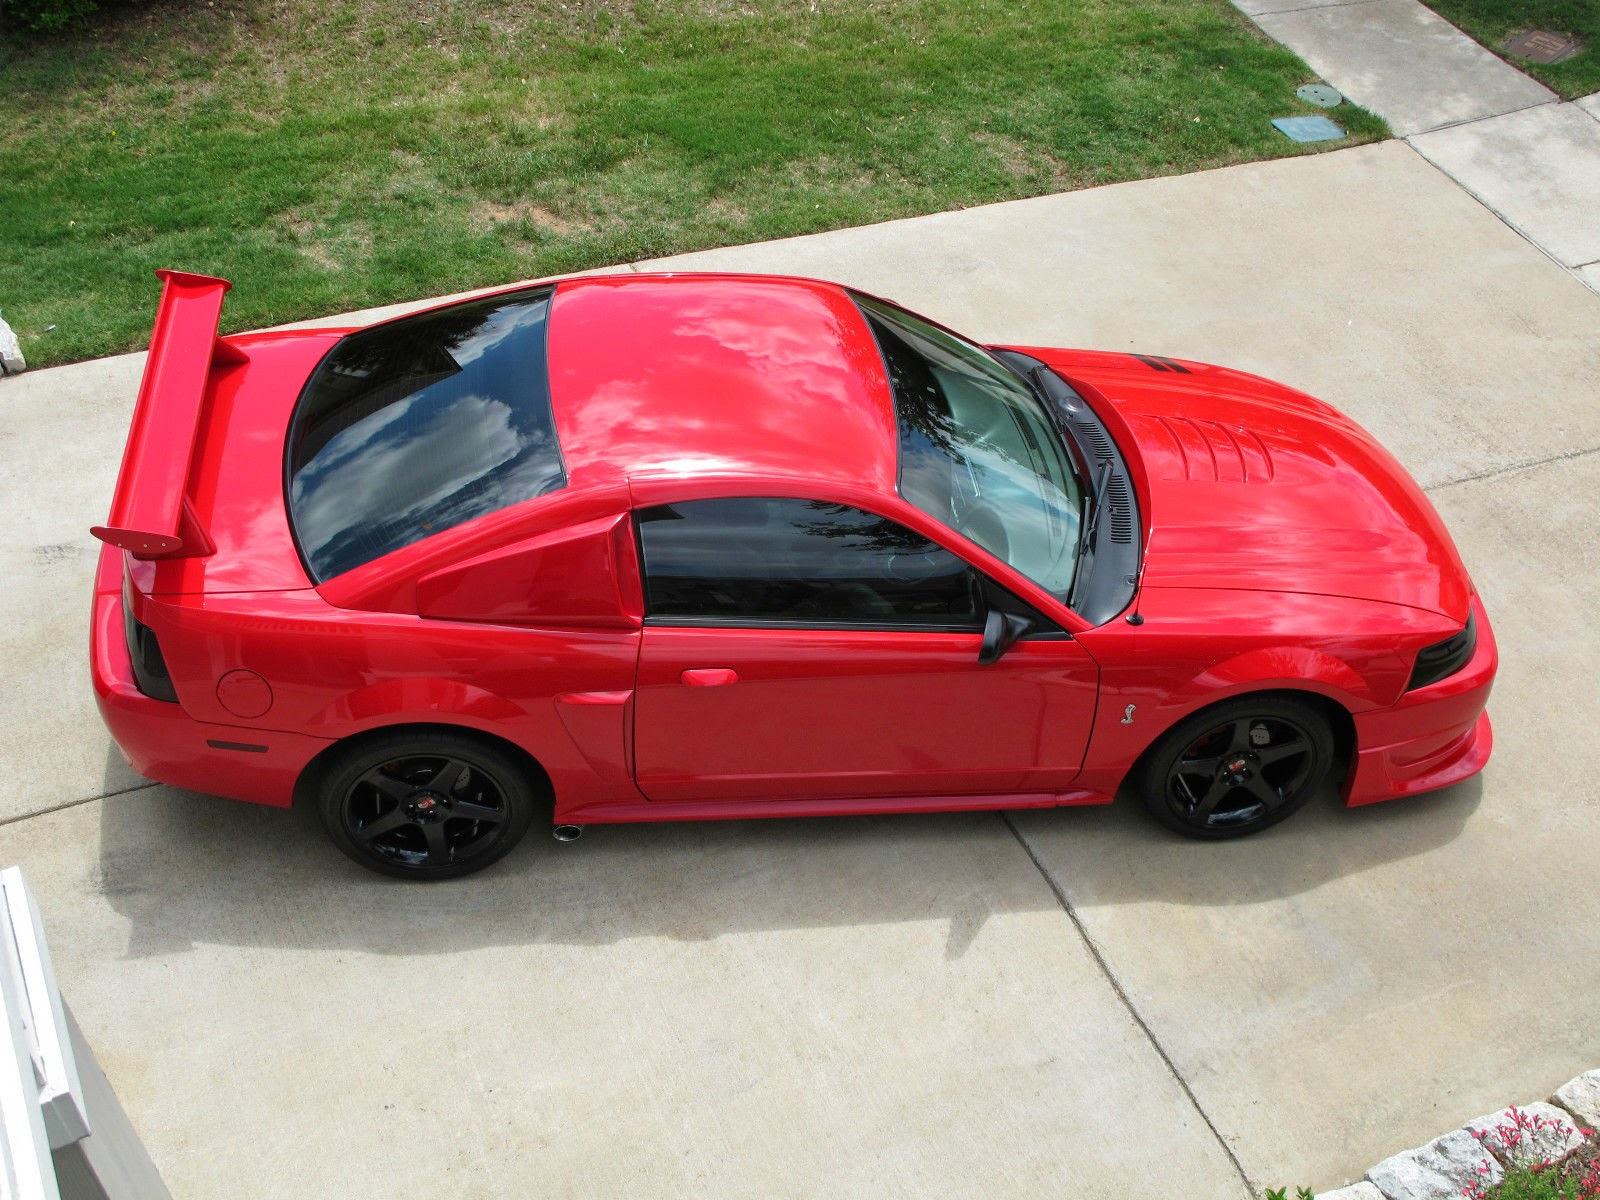 2004 Ford Mustang Gt Custom Super Charger For Sale American Muscle Cars